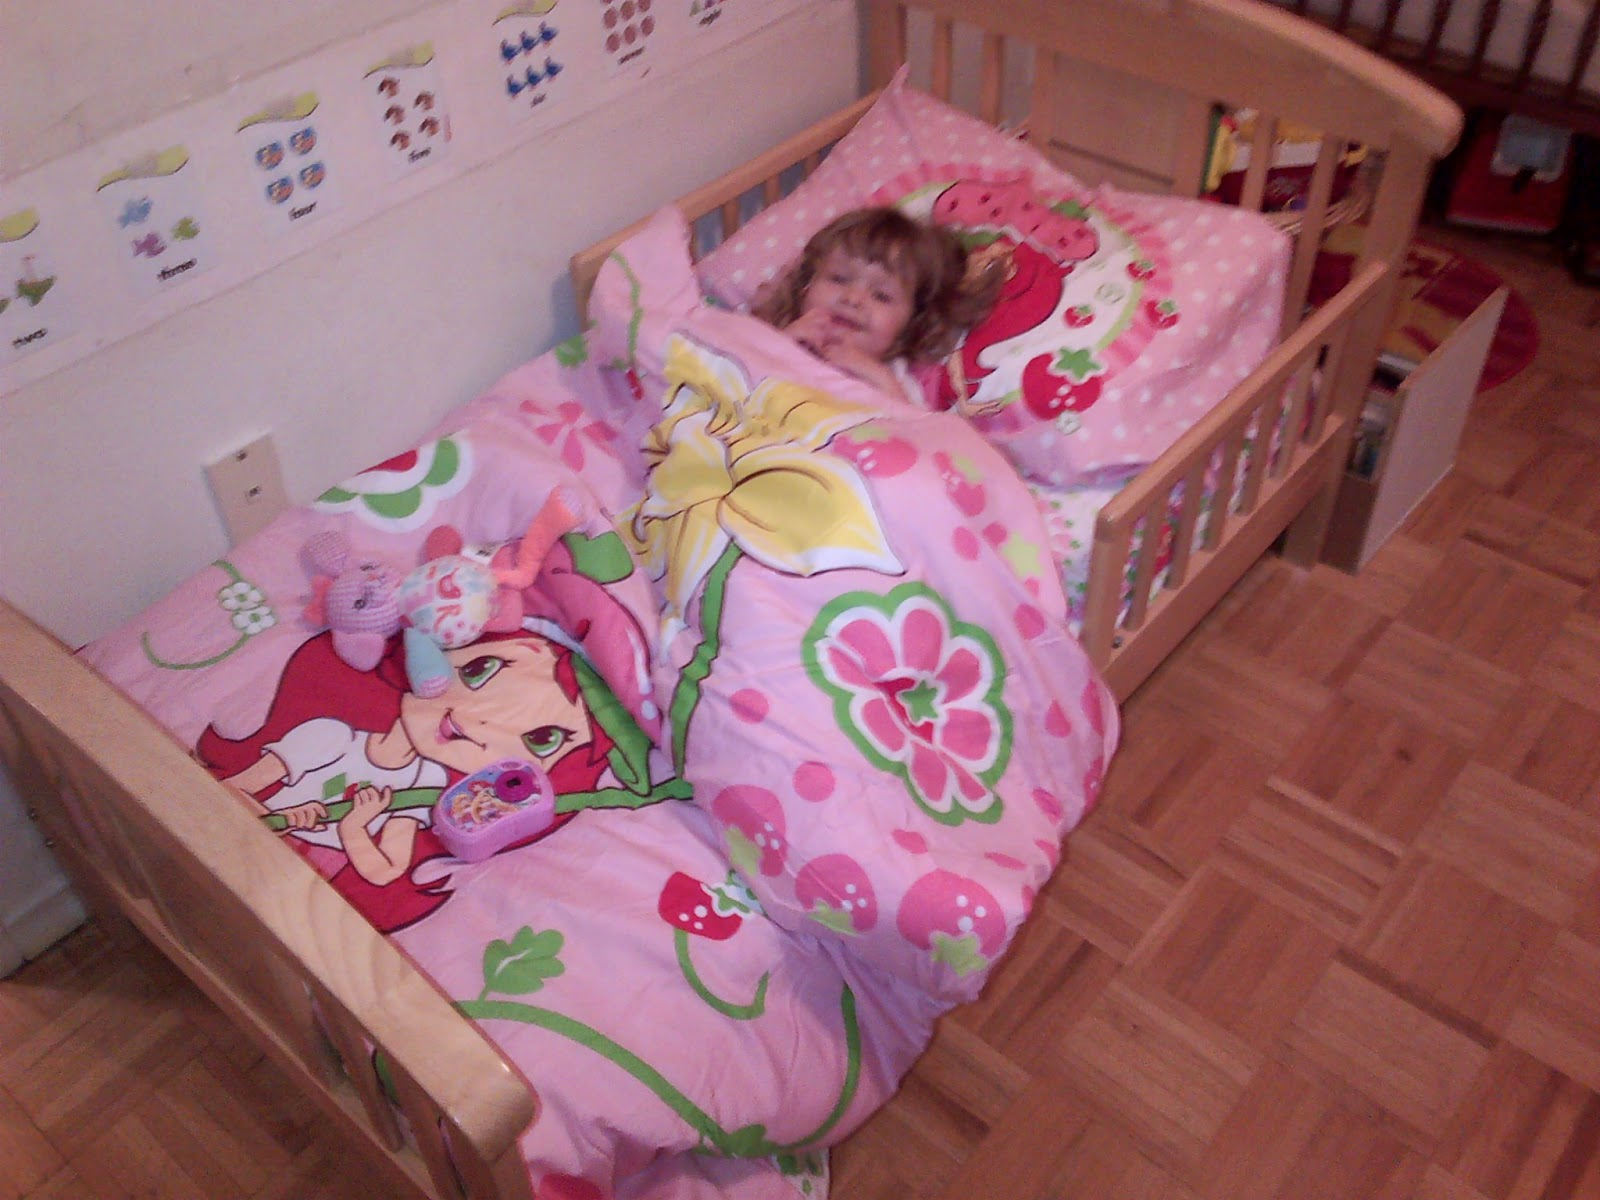 Cool In other news Leila has finally moved into her big girl bed Her Oma bought her Strawberry Shortcake sheets for Christmas so she is all set